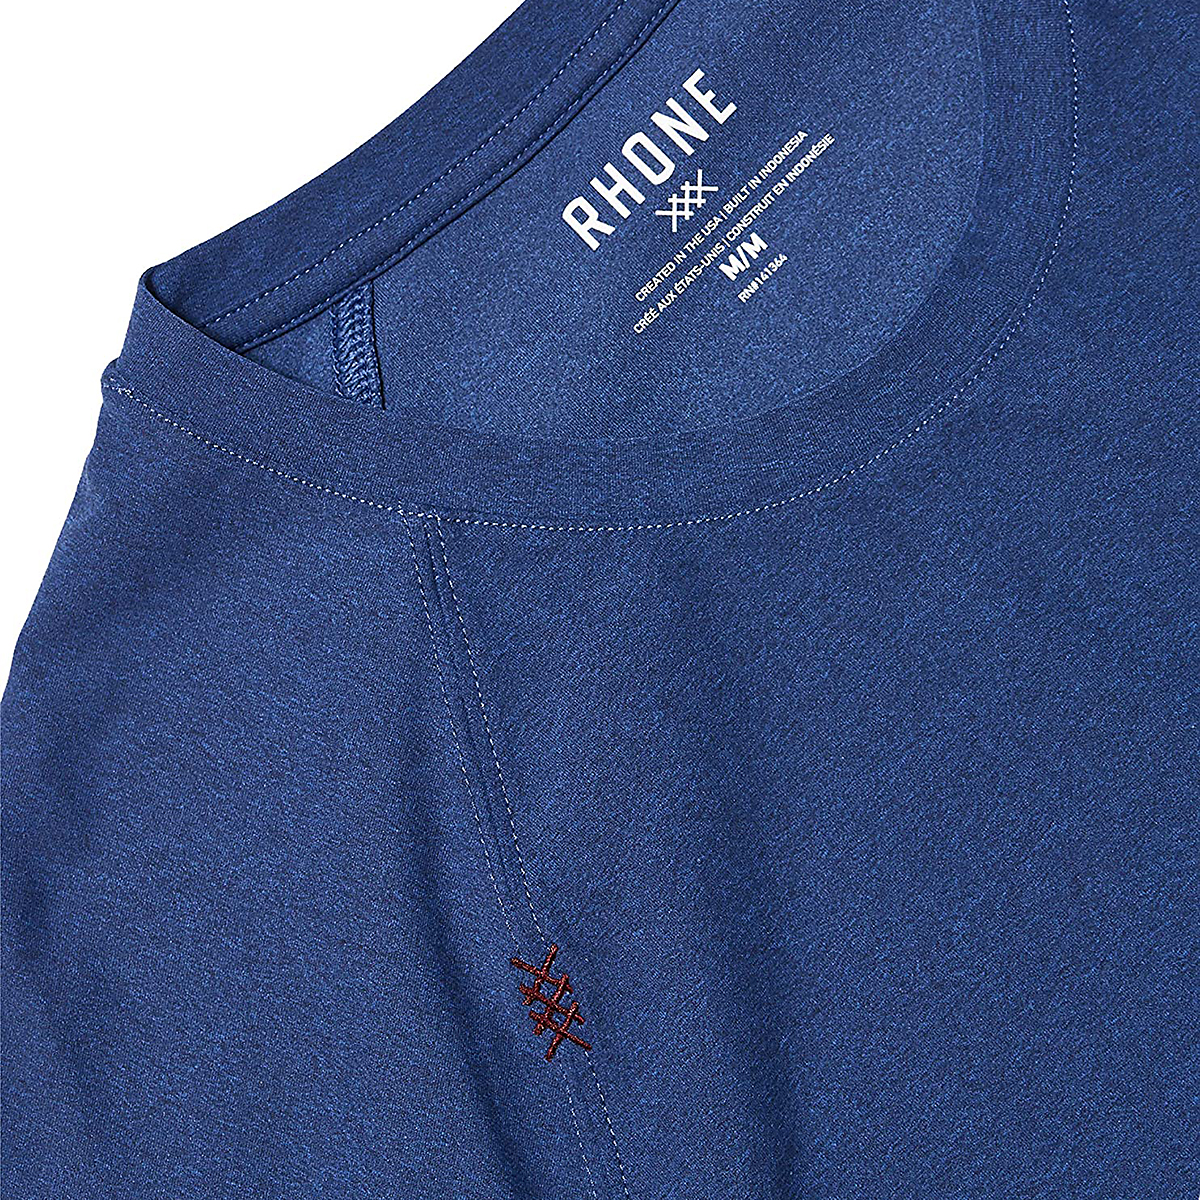 Men's Rhone Reign Short Sleeve  - Color: Midnight Sapphire Heather - Size: S, Midnight Sapphire Heather, large, image 2